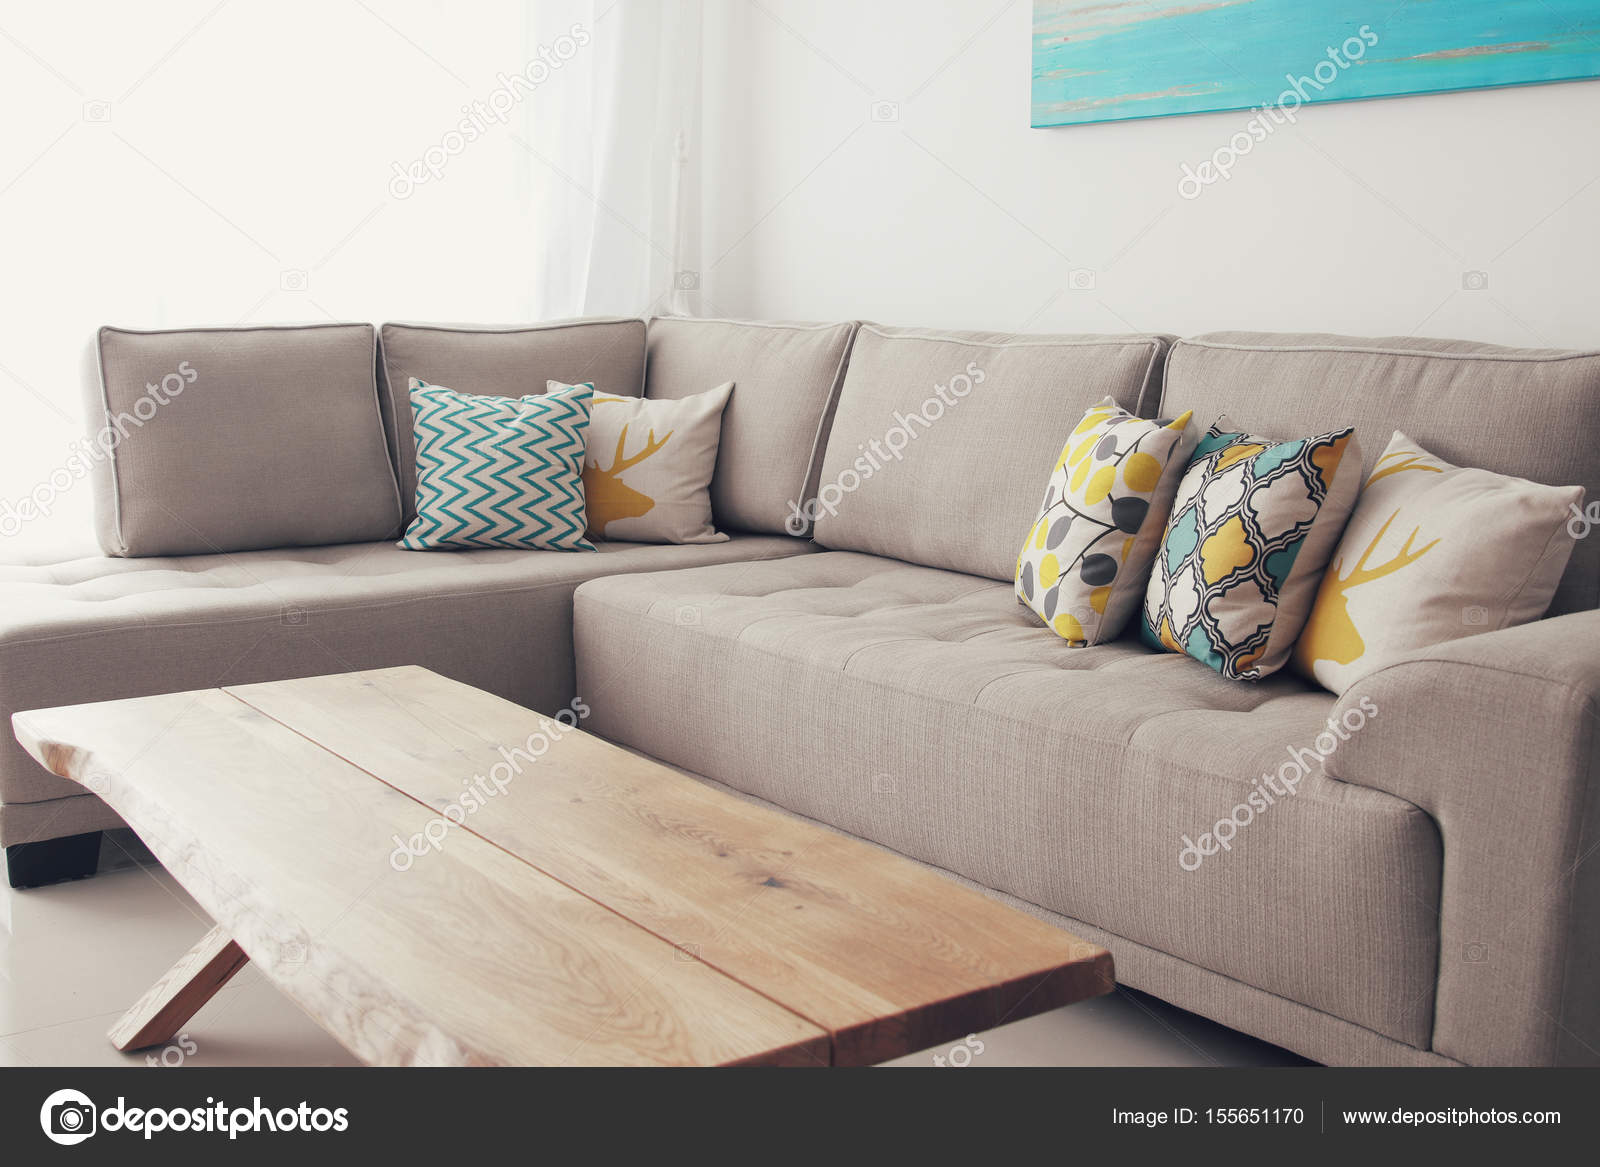 wooden empty table in front of living room sofa interior stock rh depositphotos com round coffee table in front of sofa round coffee table in front of sofa